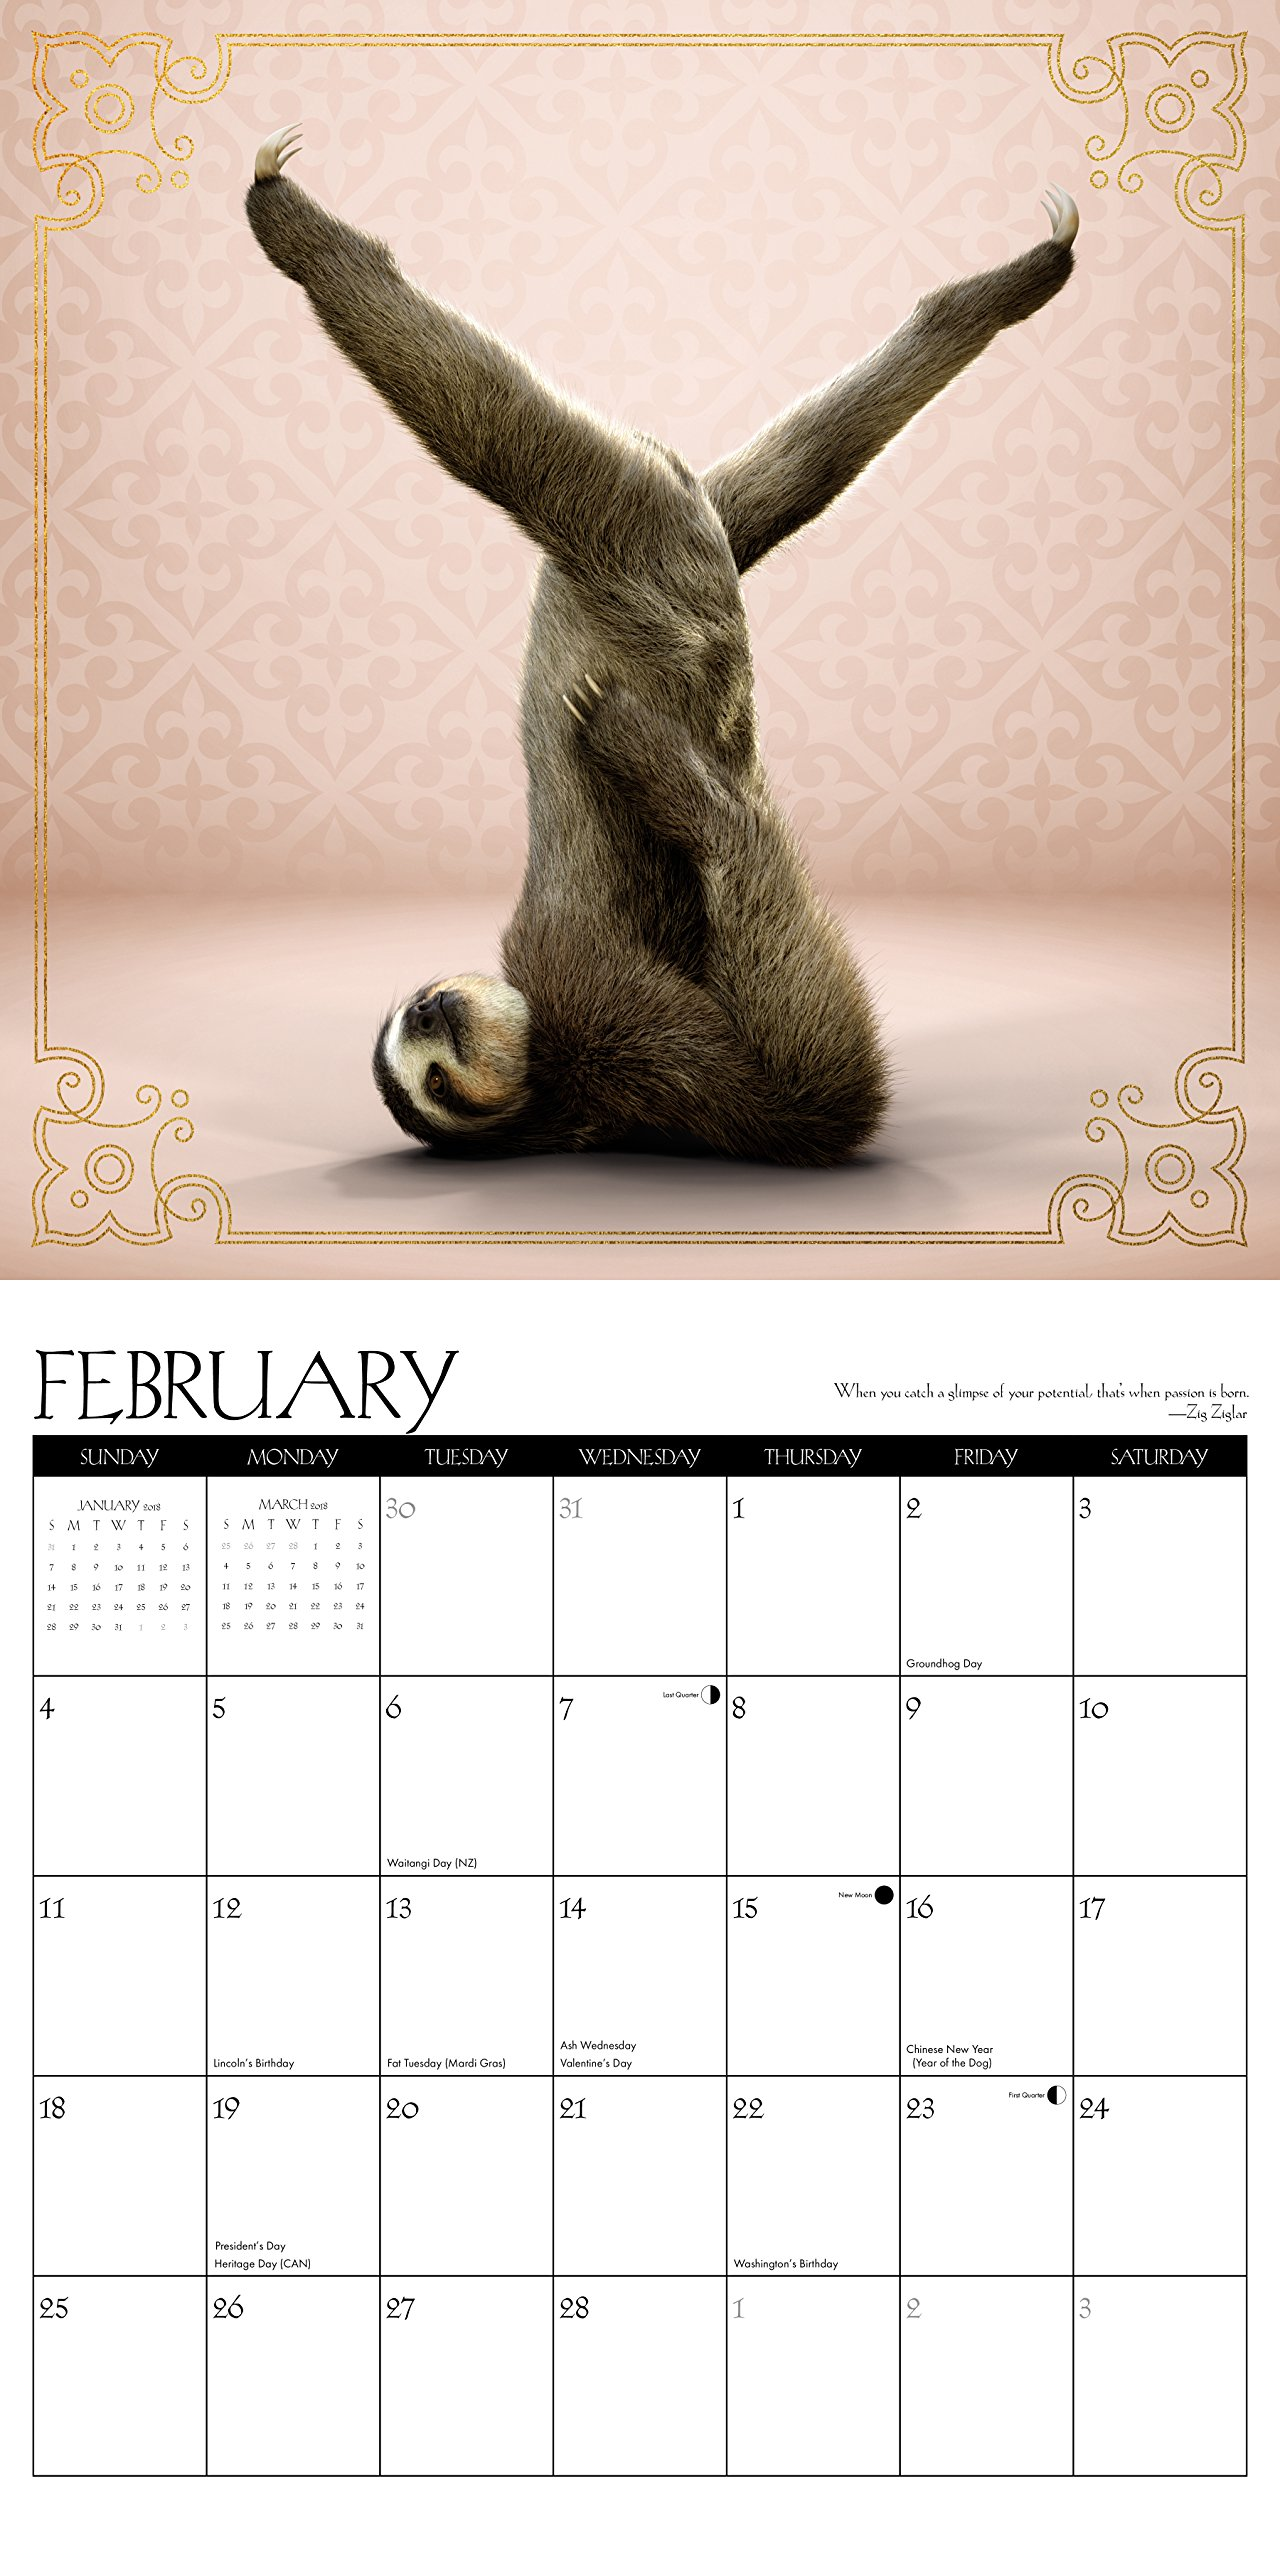 Sloth Yoga 2018 Wall Calendar: Amazon.es: Willow Creek Press ...